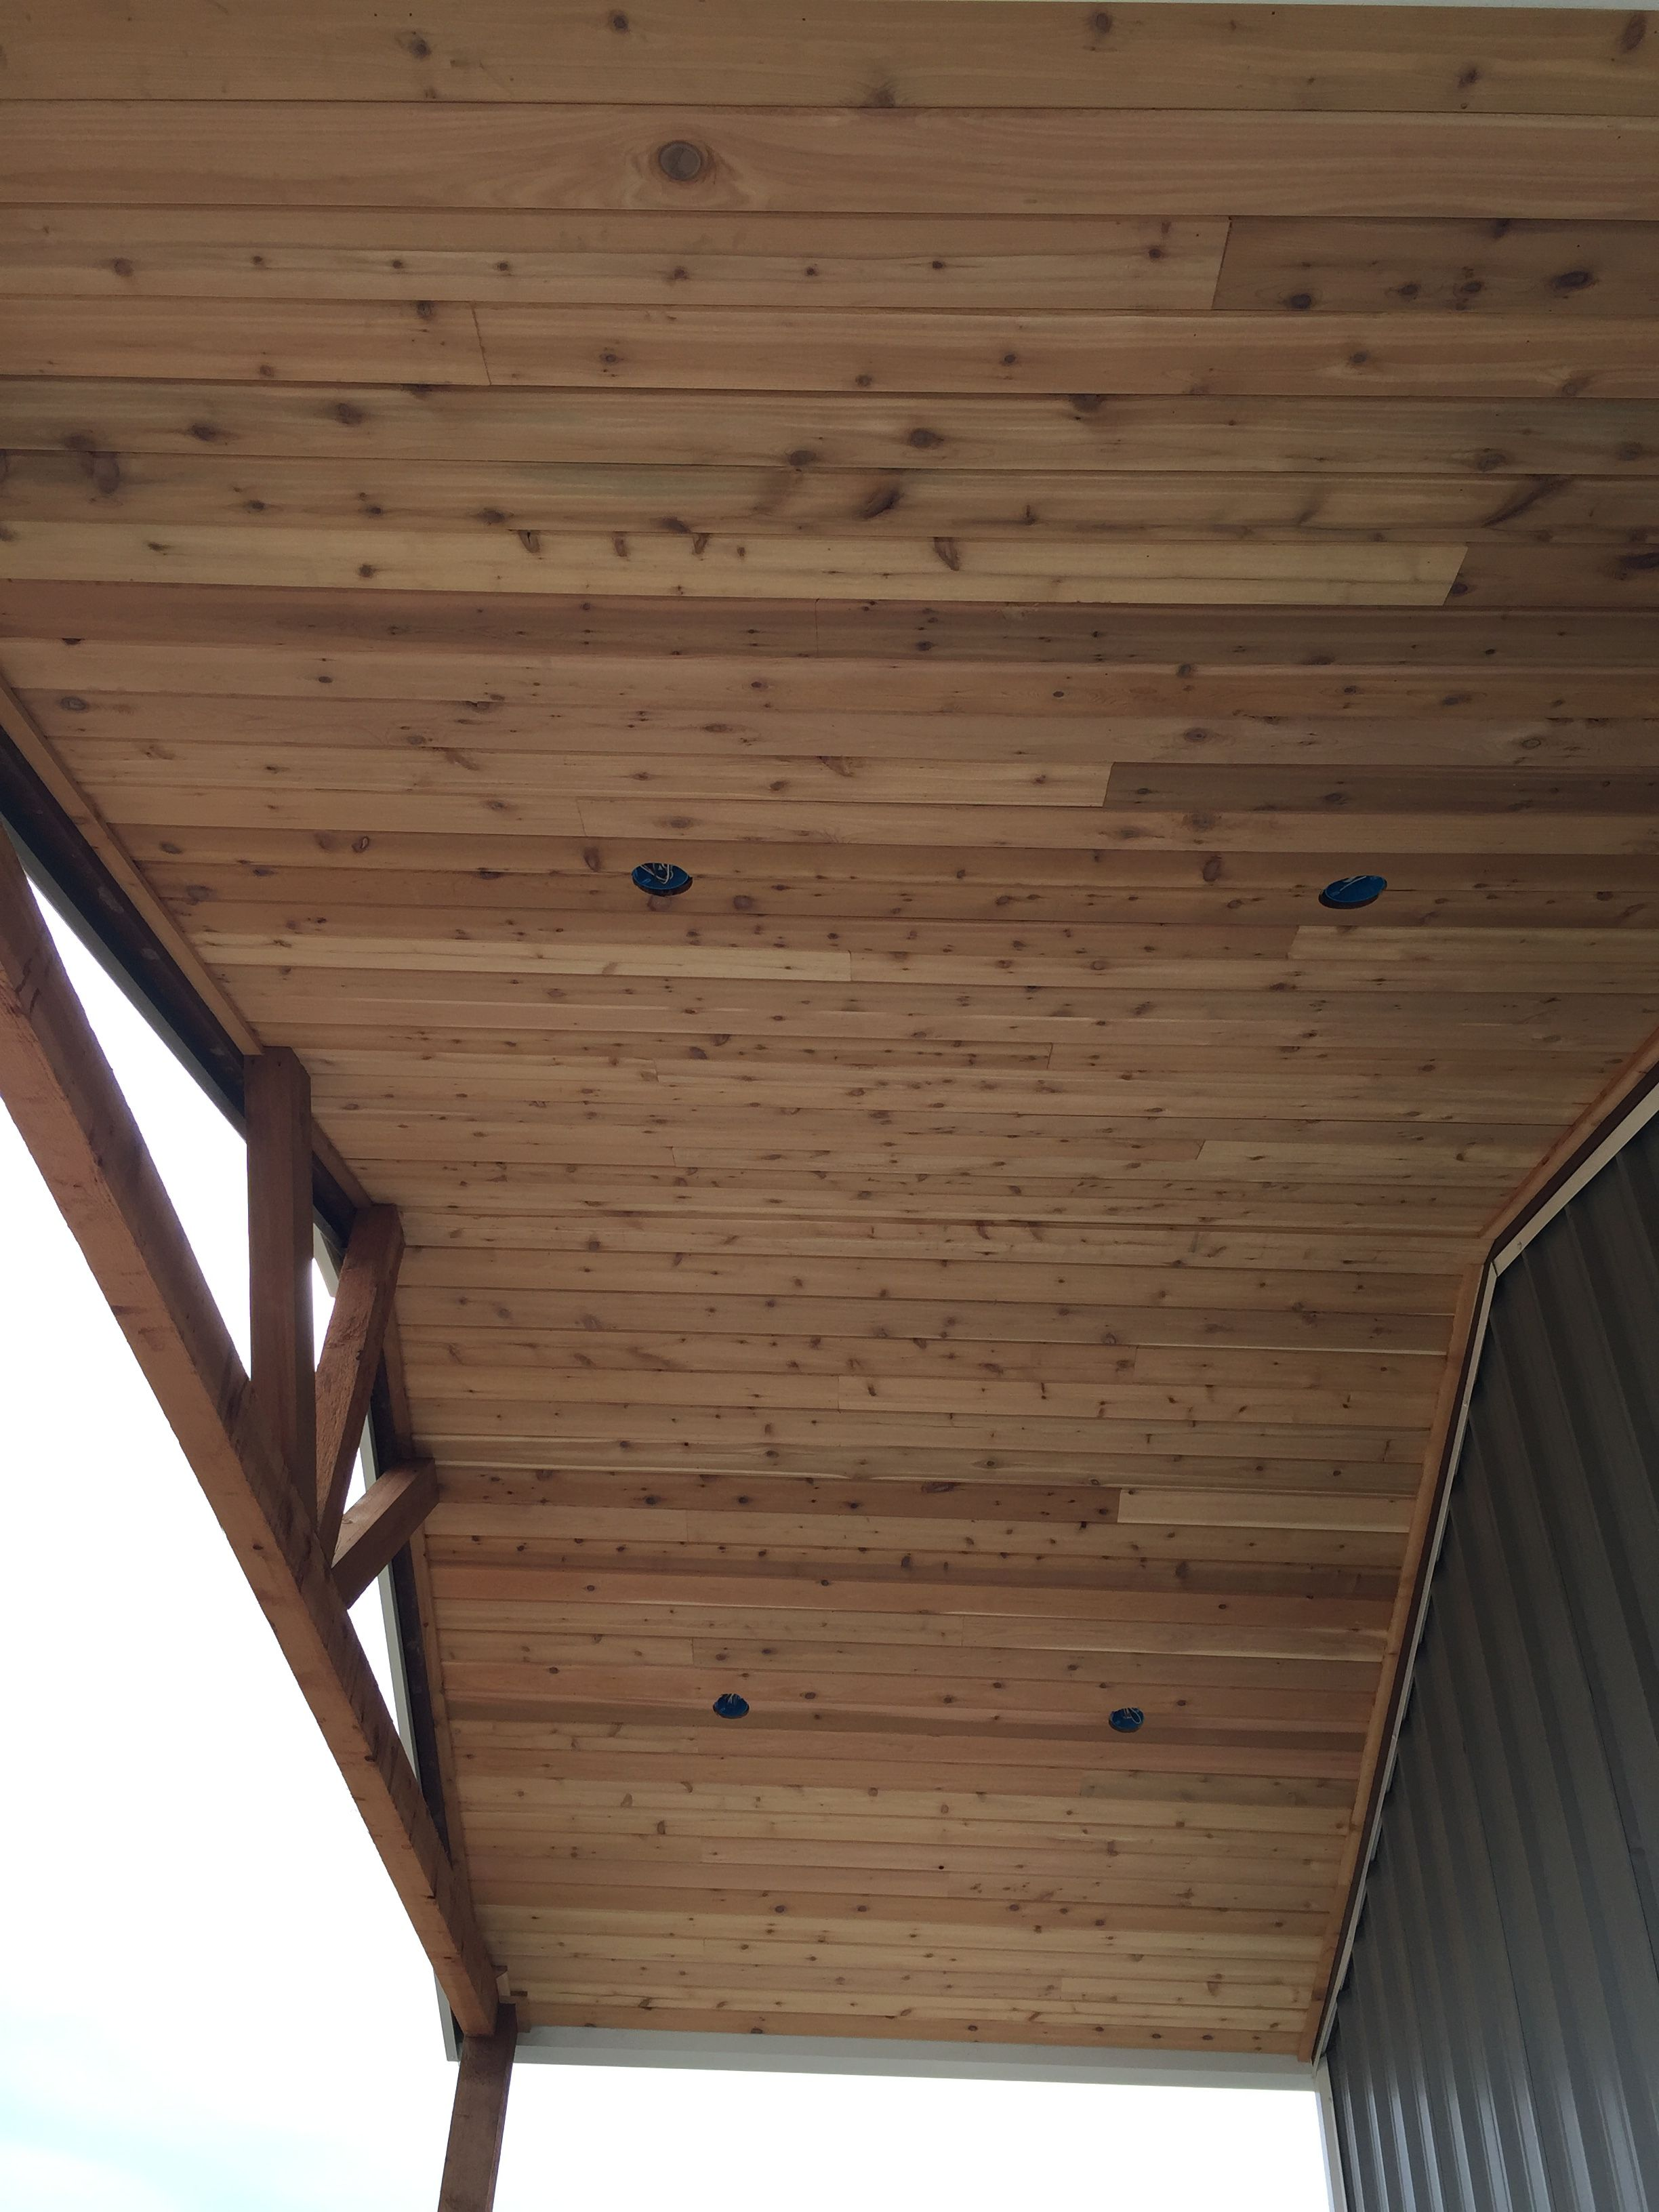 Royal wood tongue and groove panels - Tongue And Groove Cedar Panels On Back Porch